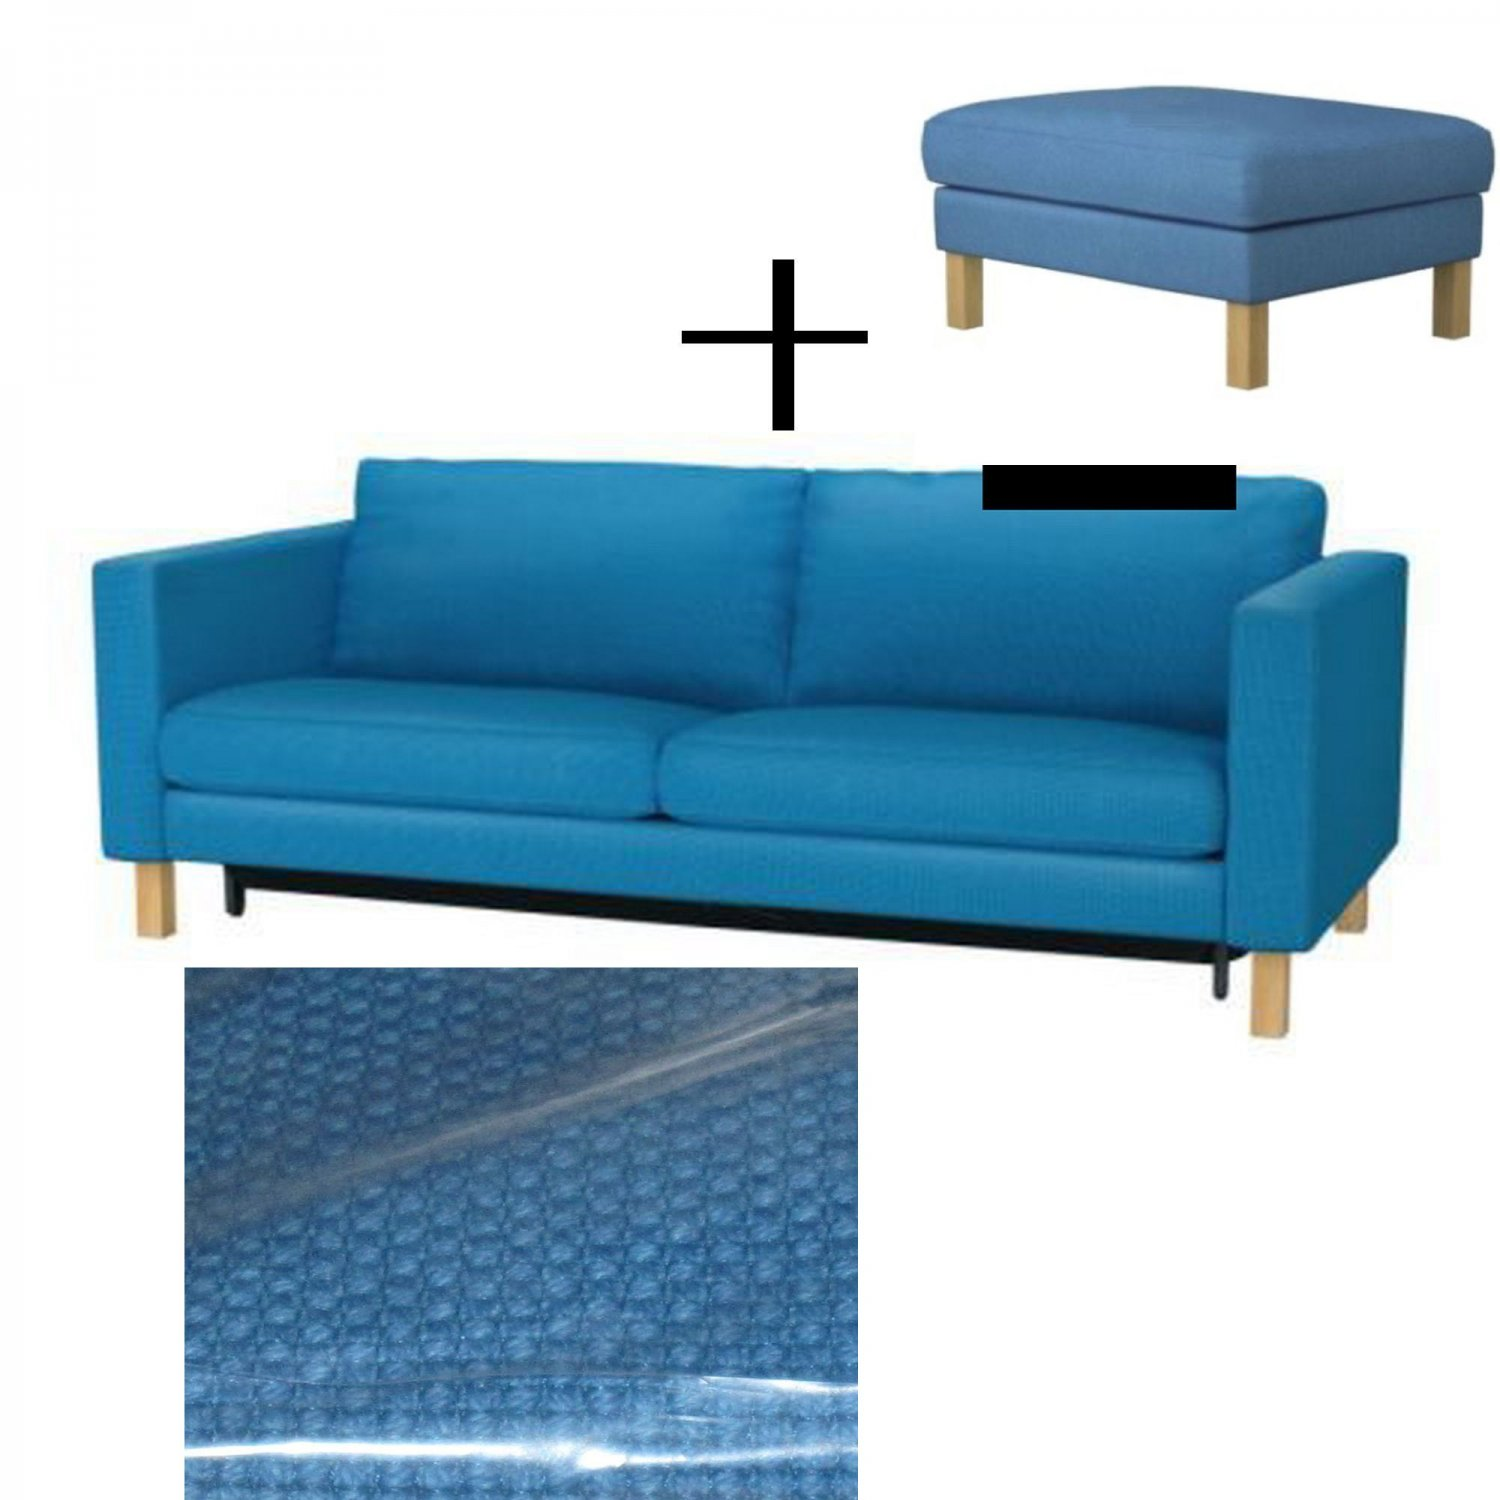 Bettsofa Ikea Blau Ikea Karlstad Sofa Bed And Footstool Slipcovers Sofabed Ottoman